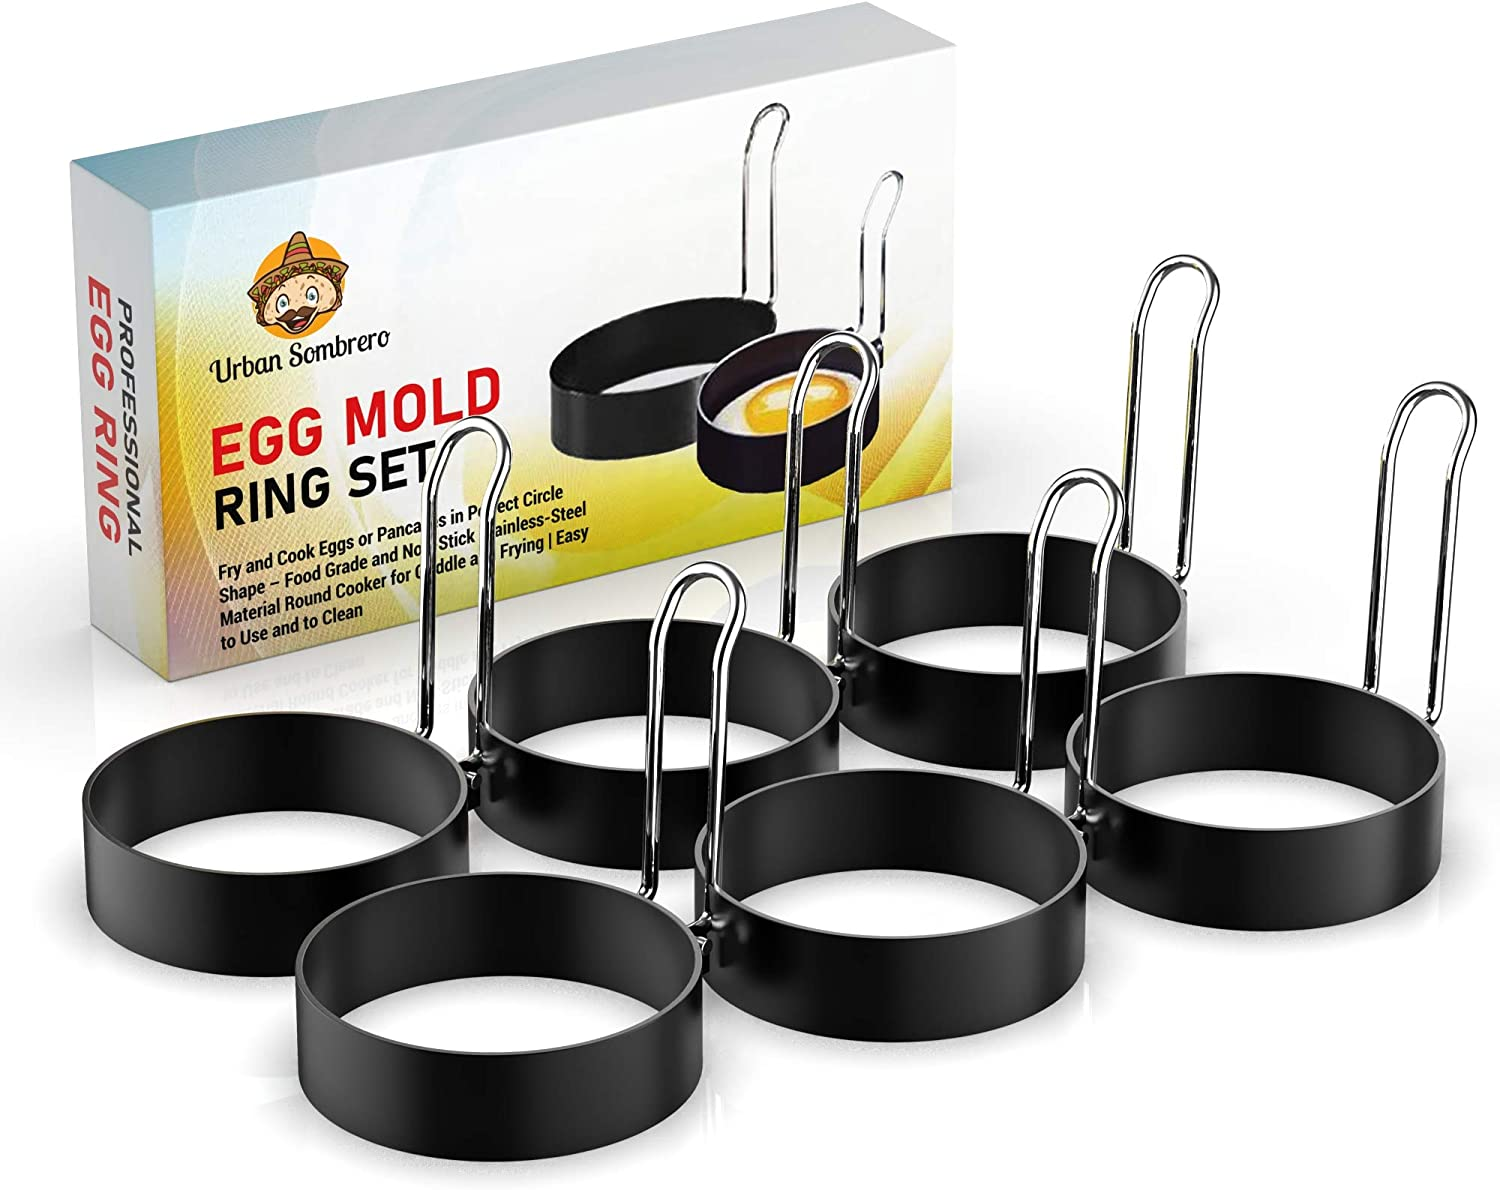 Egg Mold Ring Set (6 Pack) – Fry and Cook Eggs or Pancakes in Perfect Circle Shape – Food Grade, Non-Stick Stainless-Steel Material Round Cooker for Griddle and Frying Pan   Easy to Use and to Clean